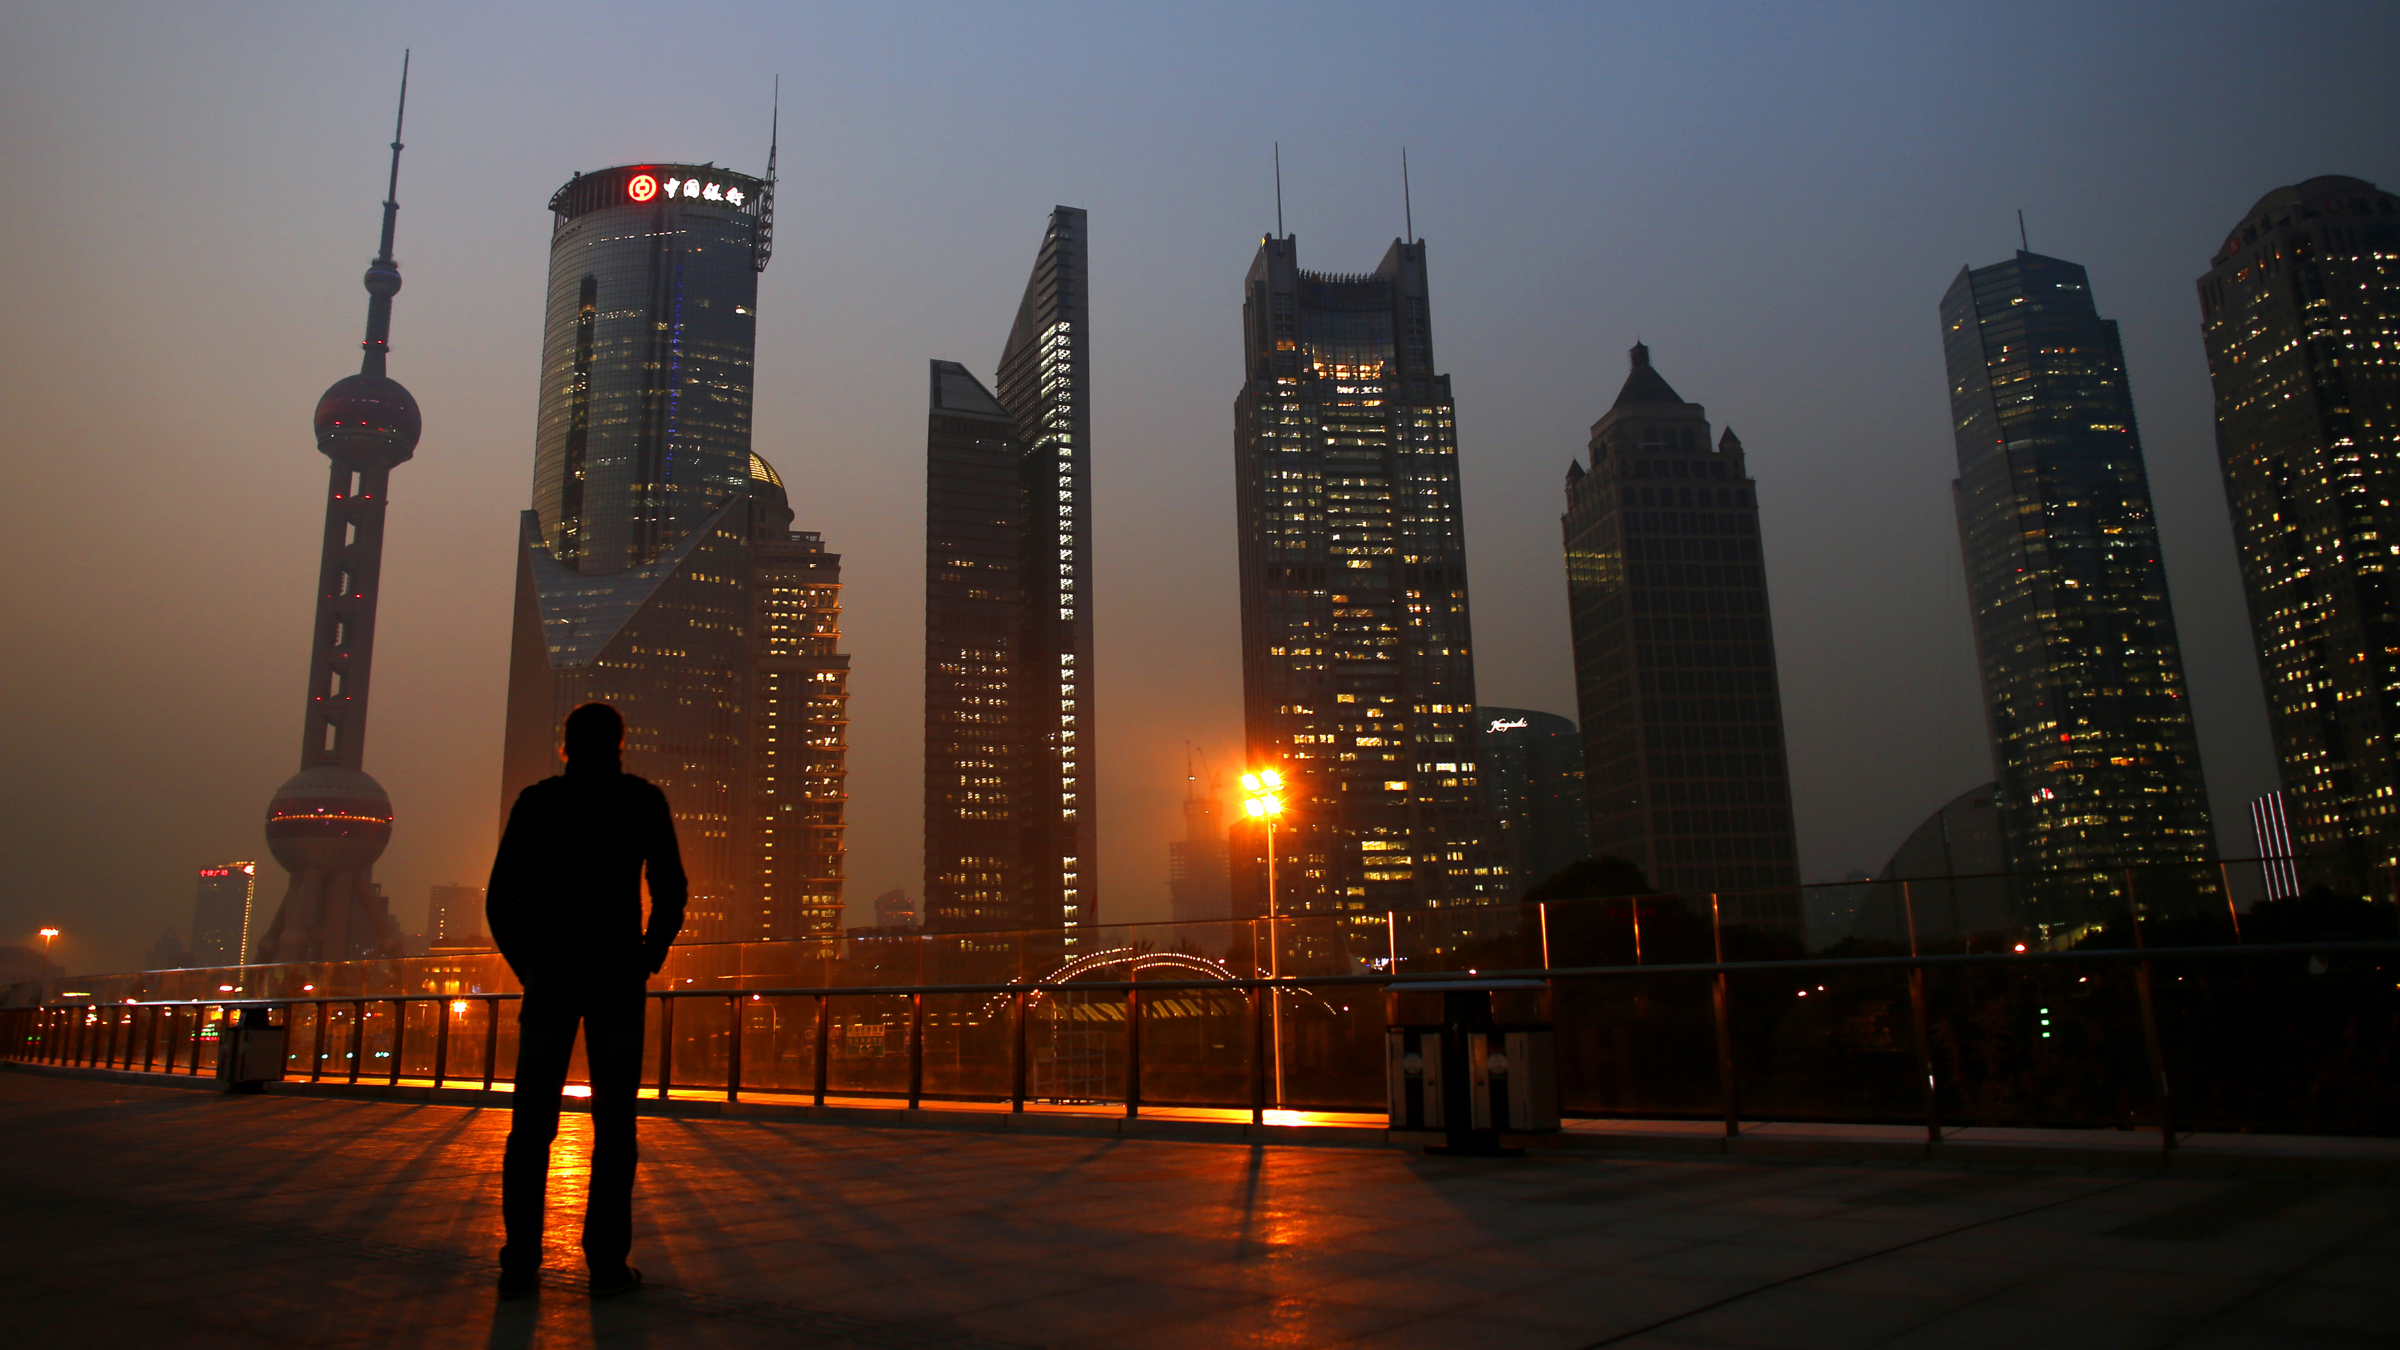 A man looks at the Pudong financial district of Shanghai November 20, 2013. With a shift in tone and language, China's central bank governor has dangled the prospect of speeding up currency reform and giving markets more room to set the yuan's exchange rate as he underlines broader plans for sweeping economic change. The central bank under Zhou Xiaochuan has consistently flagged its intention to liberalise financial markets and allow the yuan to trade more freely, even before the Communist Party's top brass unveiled late last week the boldest set of economic and social reforms in nearly three decades. REUTERS/Carlos Barria